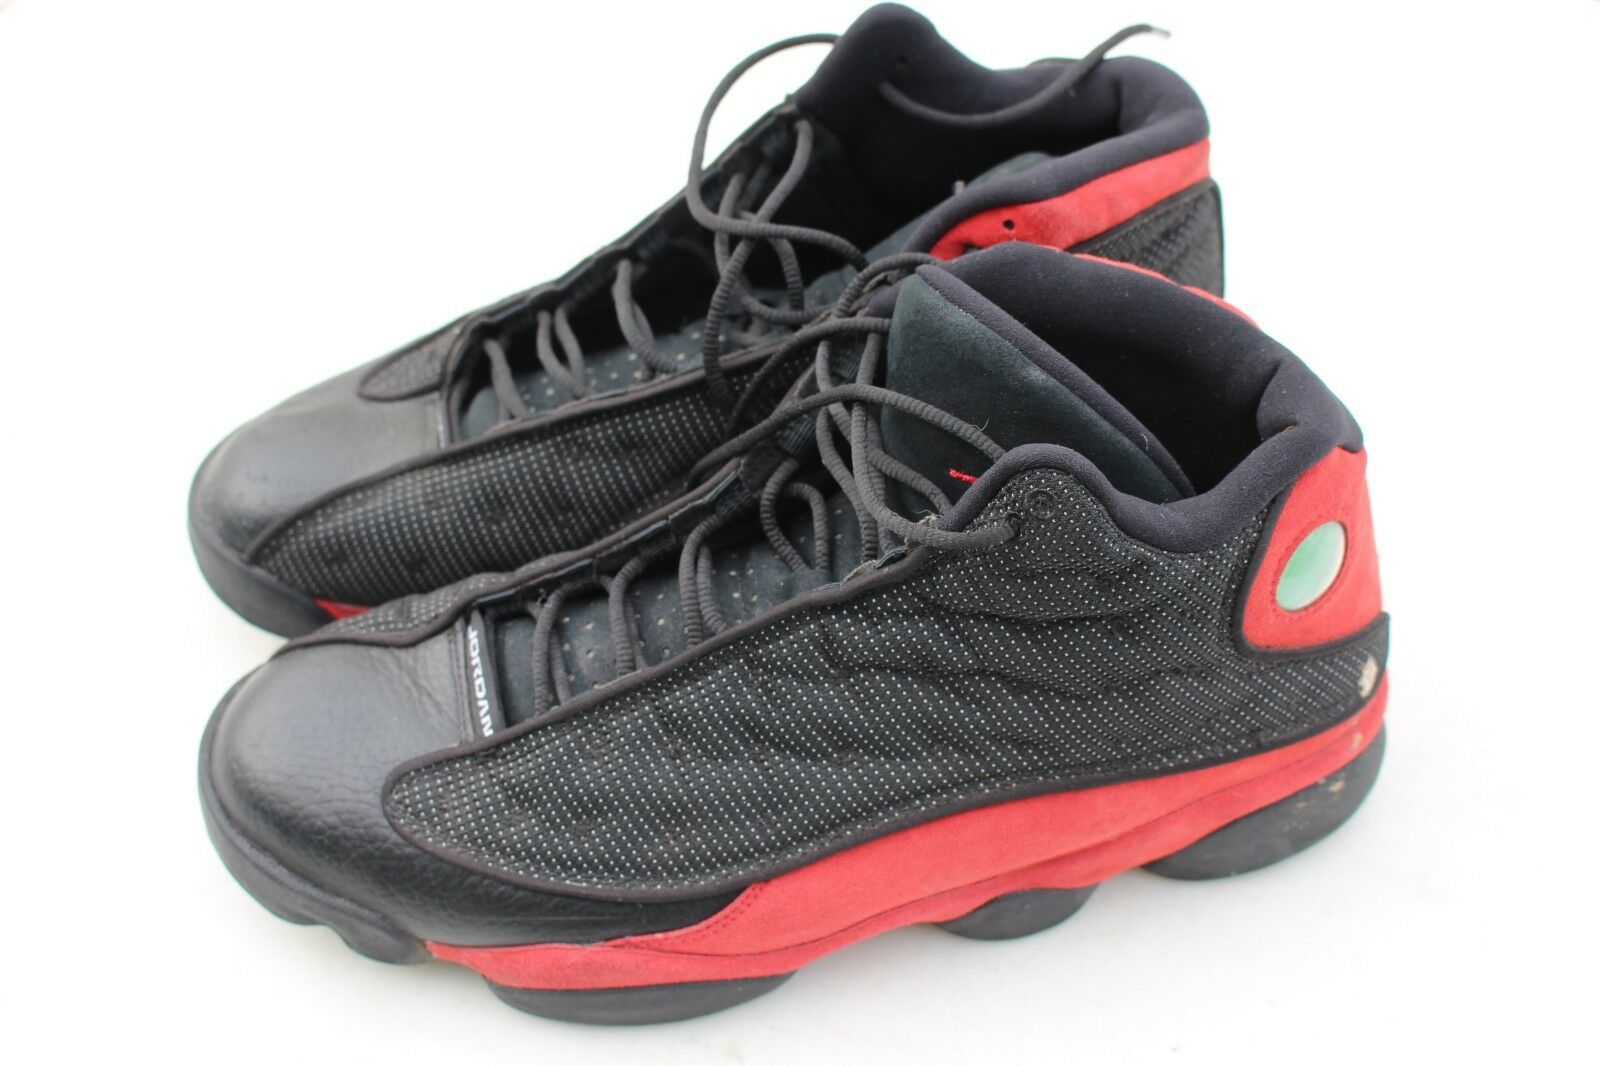 0d8df63bf74 NIKE AIR JORDAN XIII 13 RETRO BRED PLAYOFF TRUE RED-WHITE 12 BLACK 414571- 004 niuudd6057-Athletic Shoes